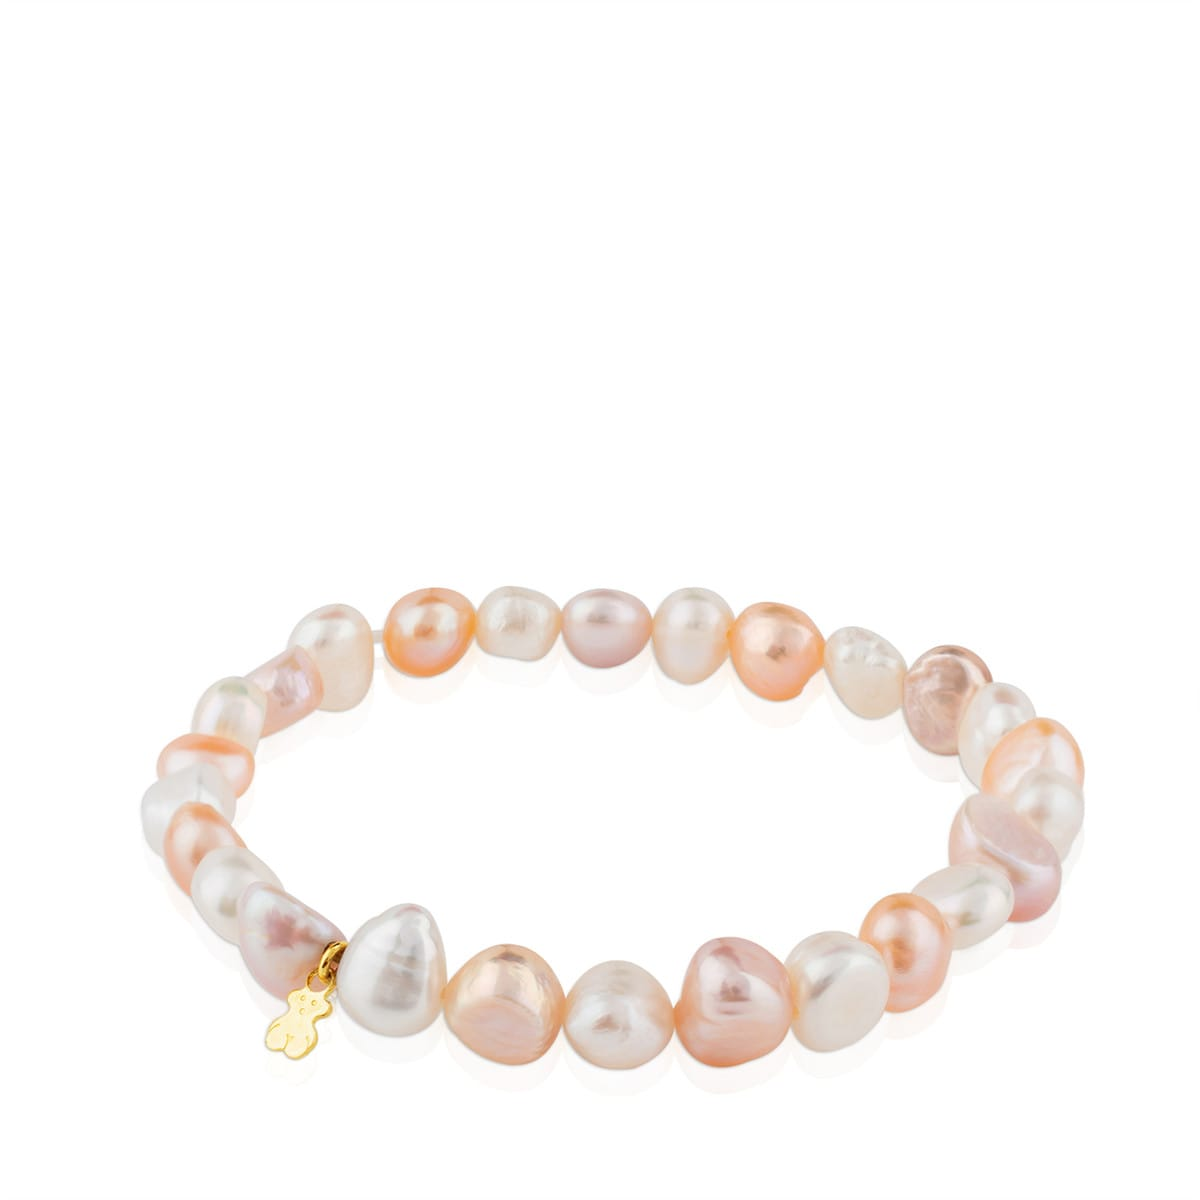 Pulseira TOUS Pearls em Ouro